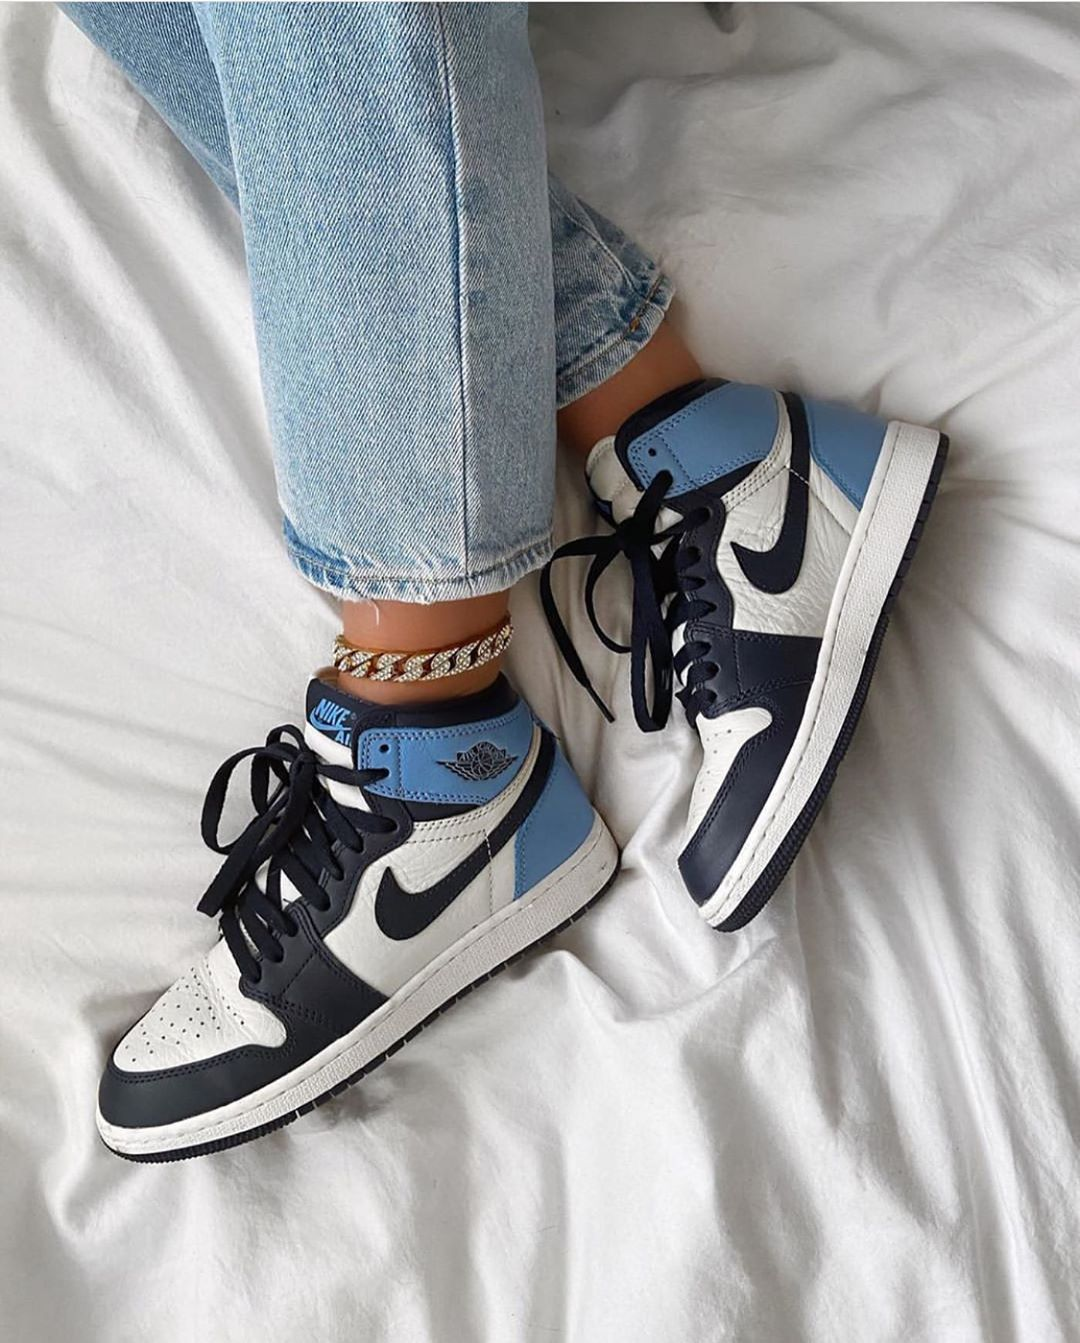 Jordan 1 Retro High Obsidian UNC in 2020